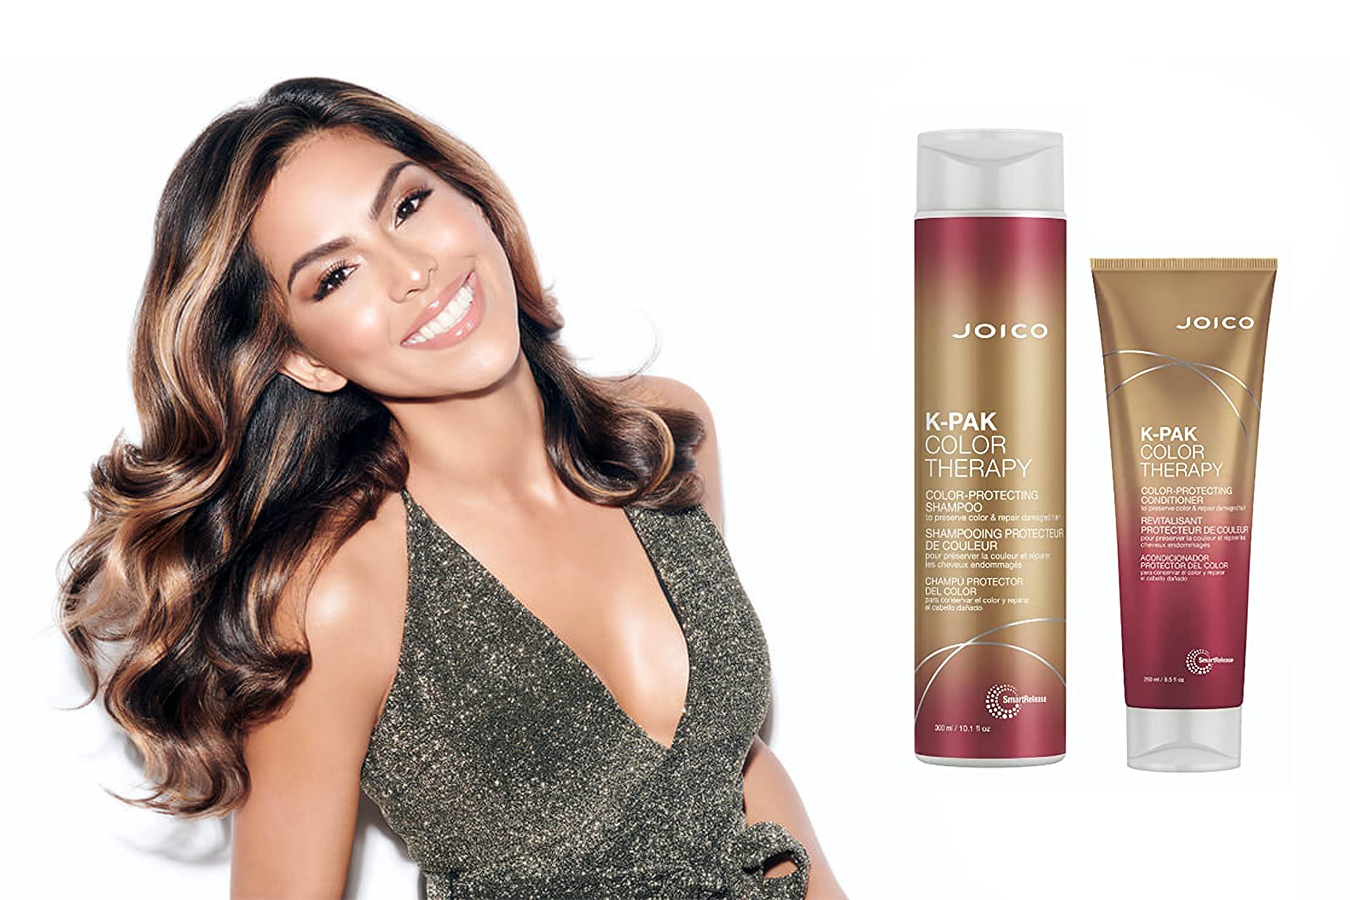 joico k pak color therapy shampoo and conditioner